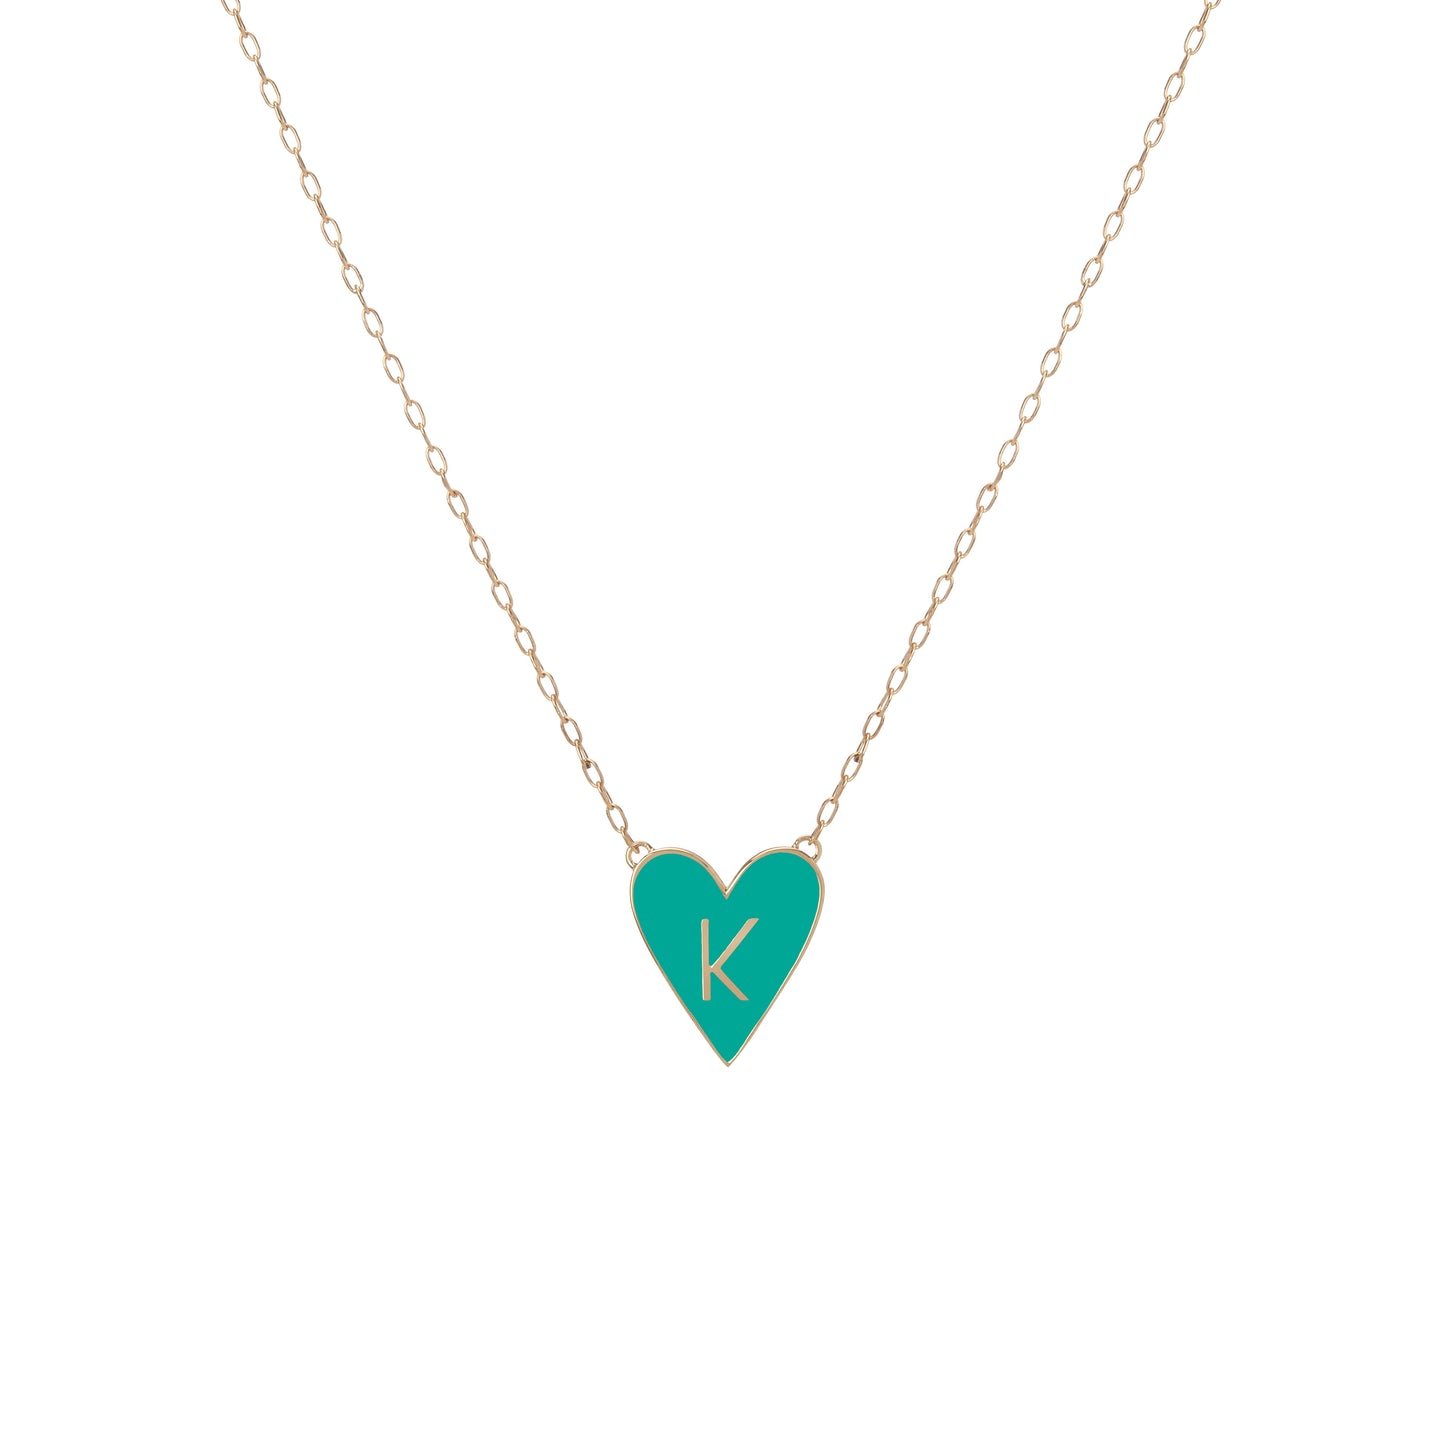 Medium Gold Border Enamel Heart Pendant with Letter